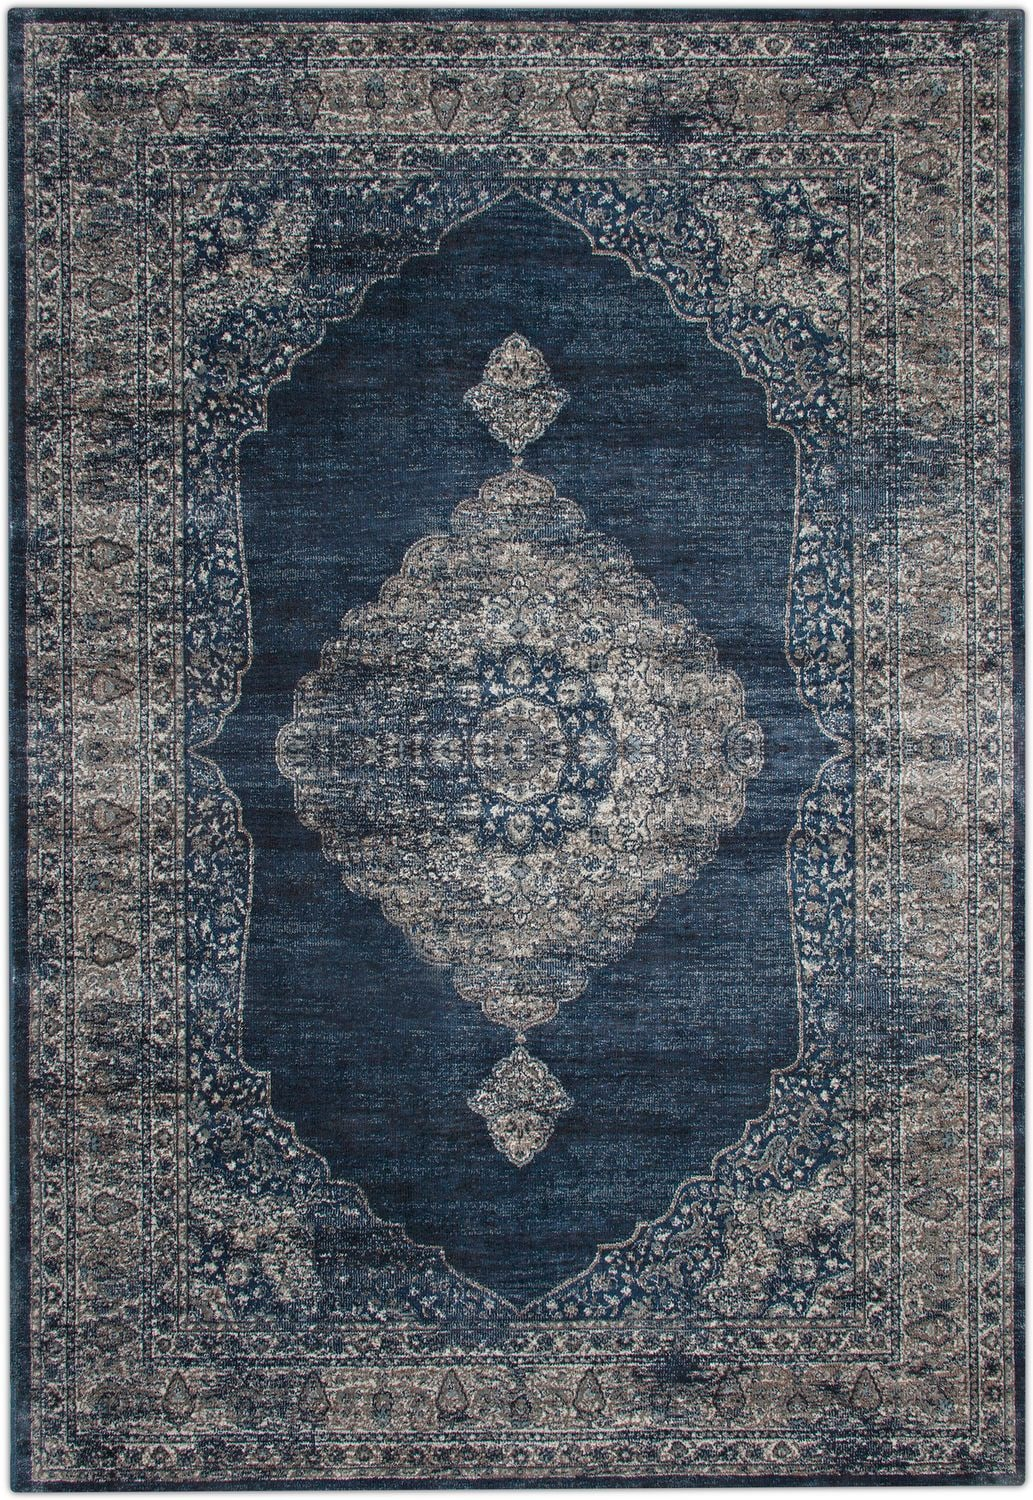 Rugs - Sonoma Area Rug - Blue and Gray